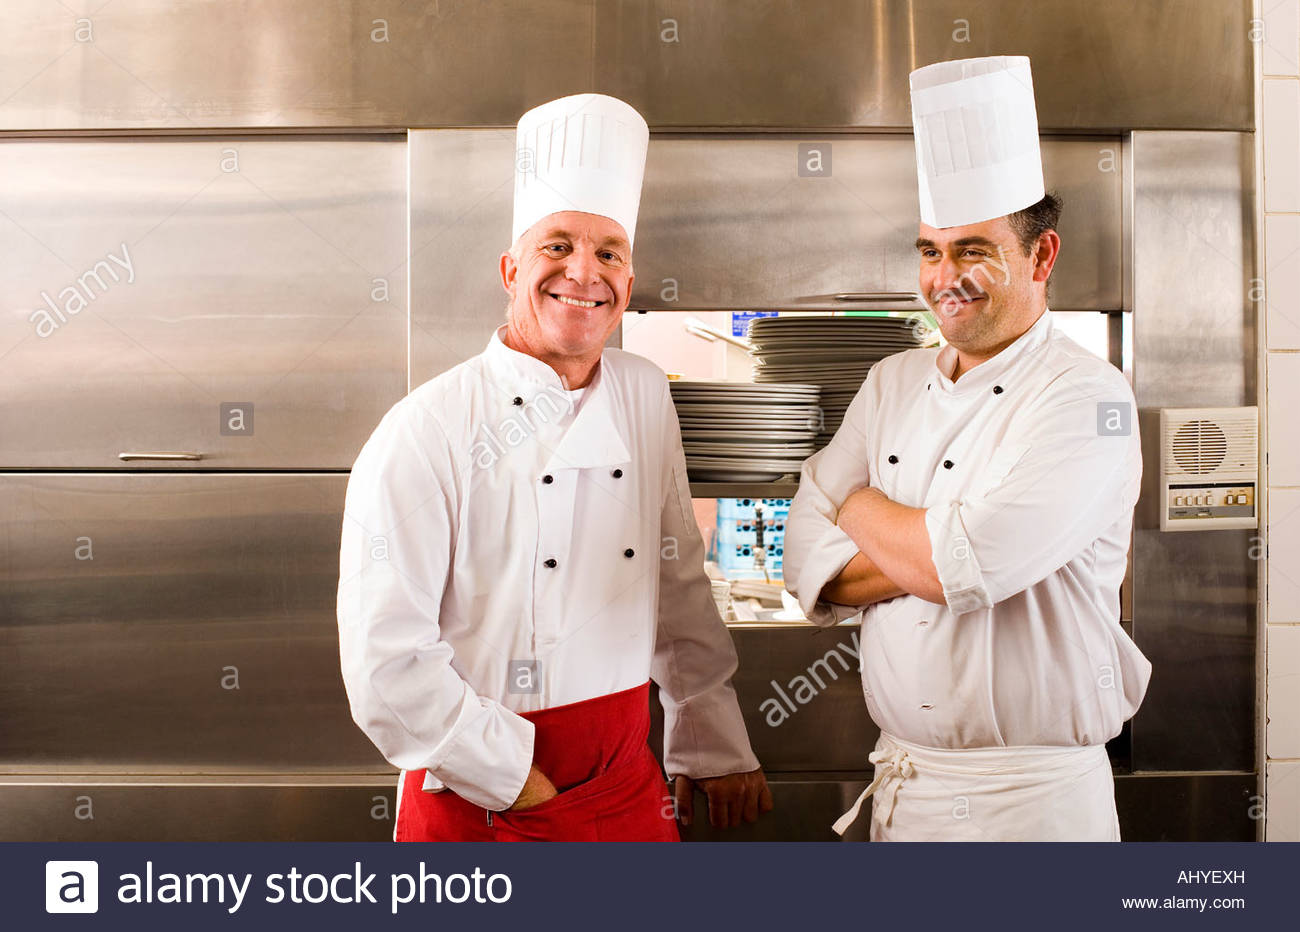 Two male chefs standing in commercial kitchen smiling portrait Stock Photo